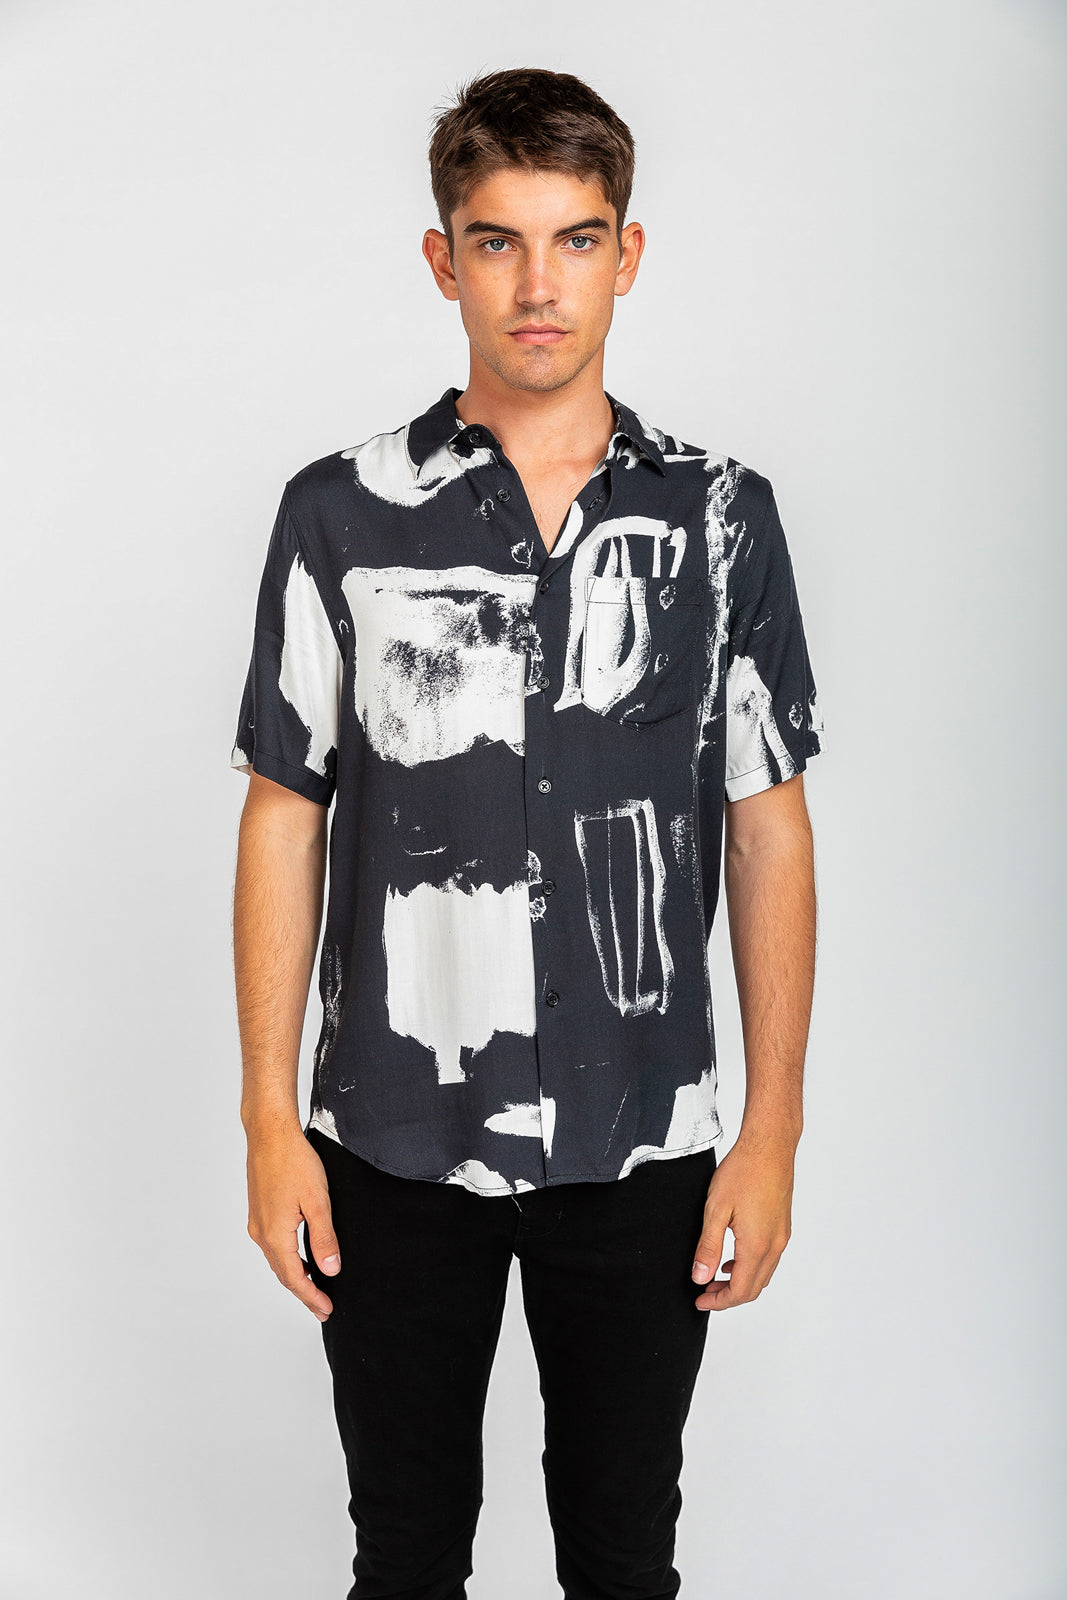 Jouseff Art Shirt - Black Art